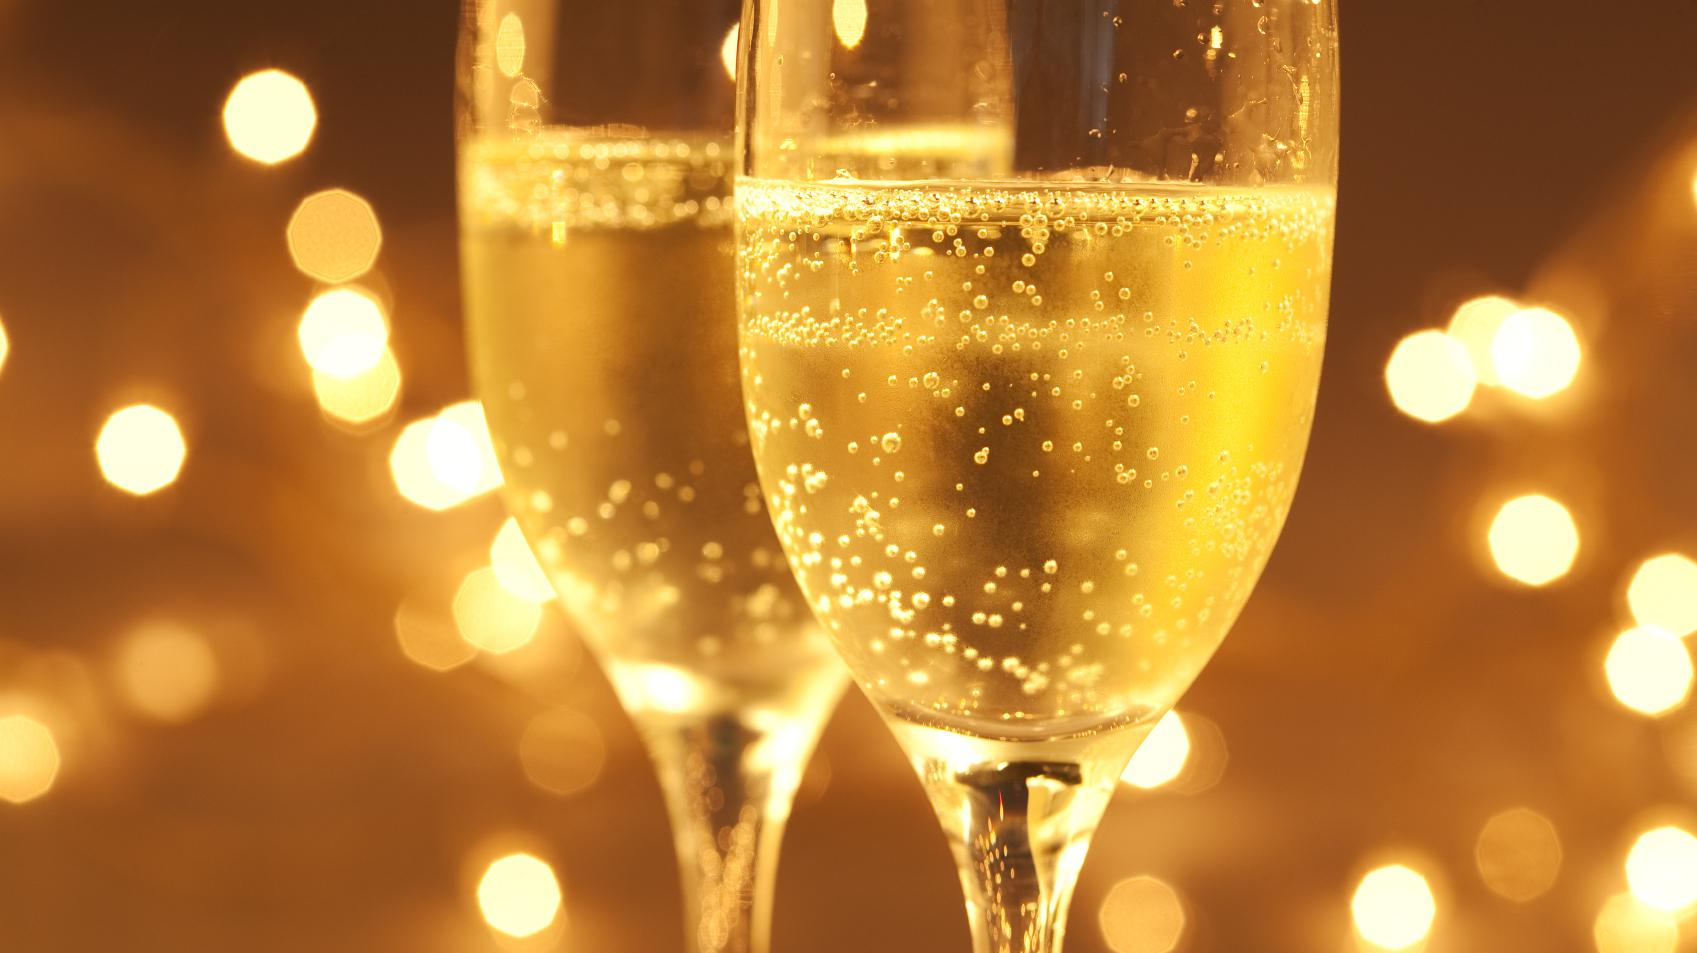 Cheap Bubbly Or Expensive Sparkling Wine? Look To The Bubbles For Clues | KNKX